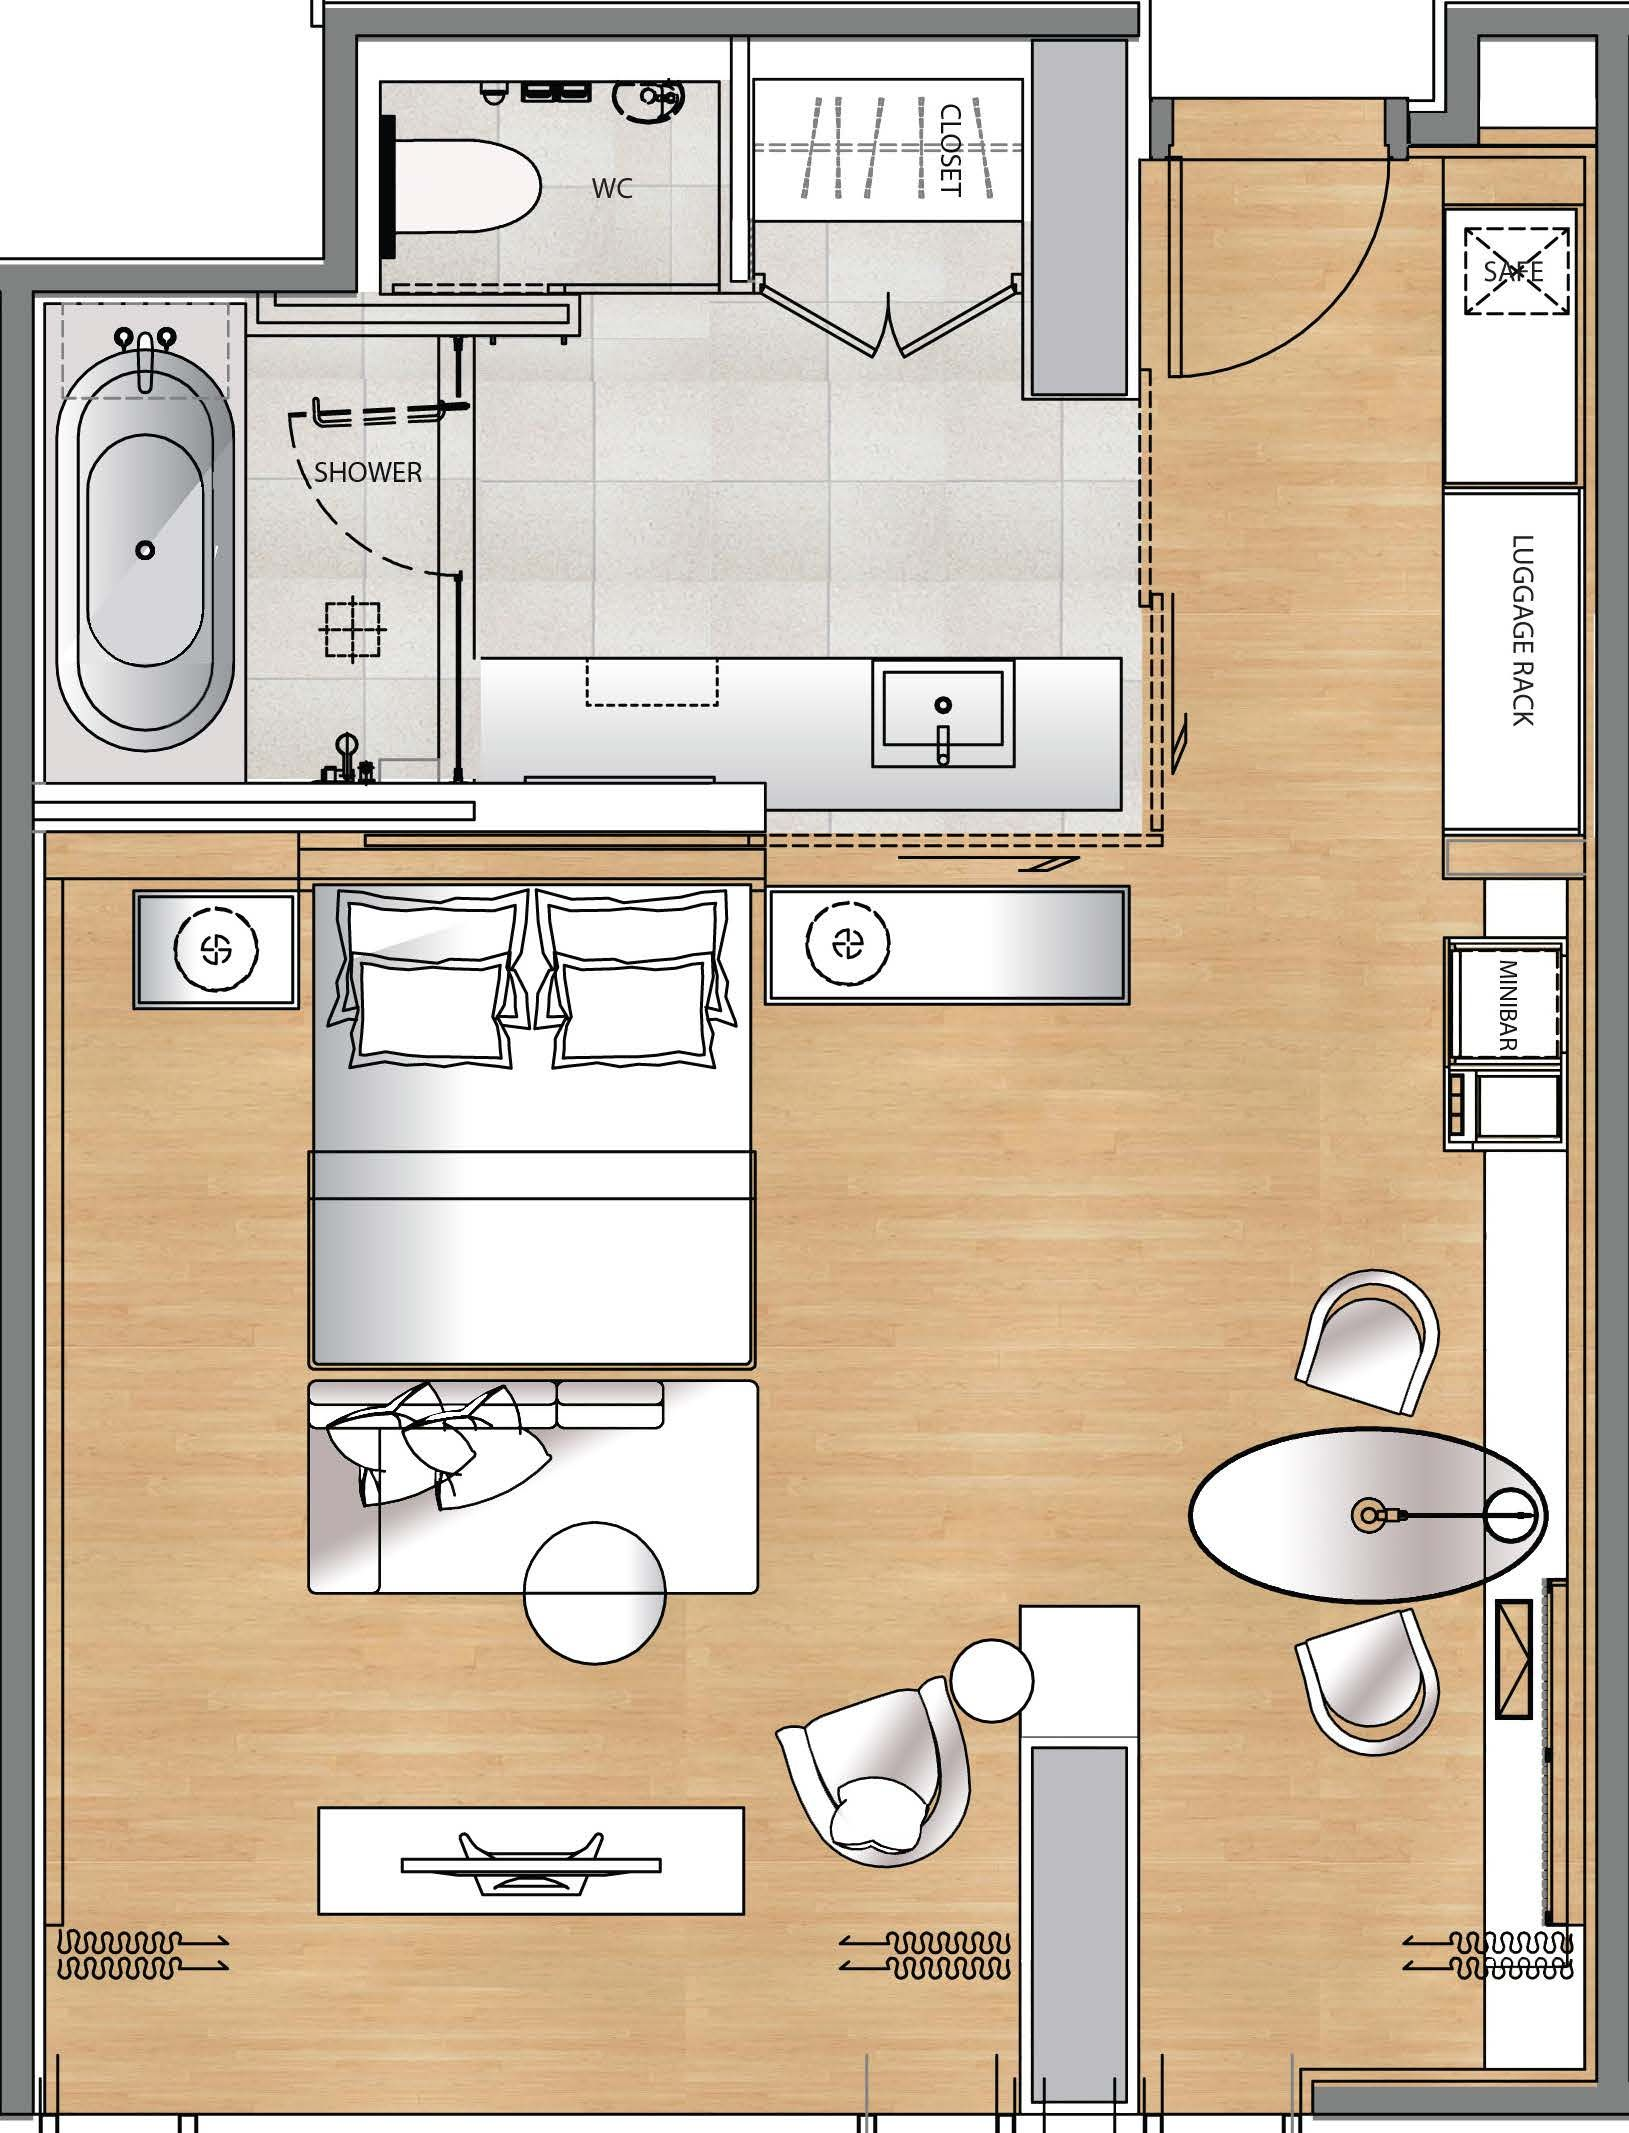 Hotel gym floor plan google search hotel rooms for Best bathroom layout plans